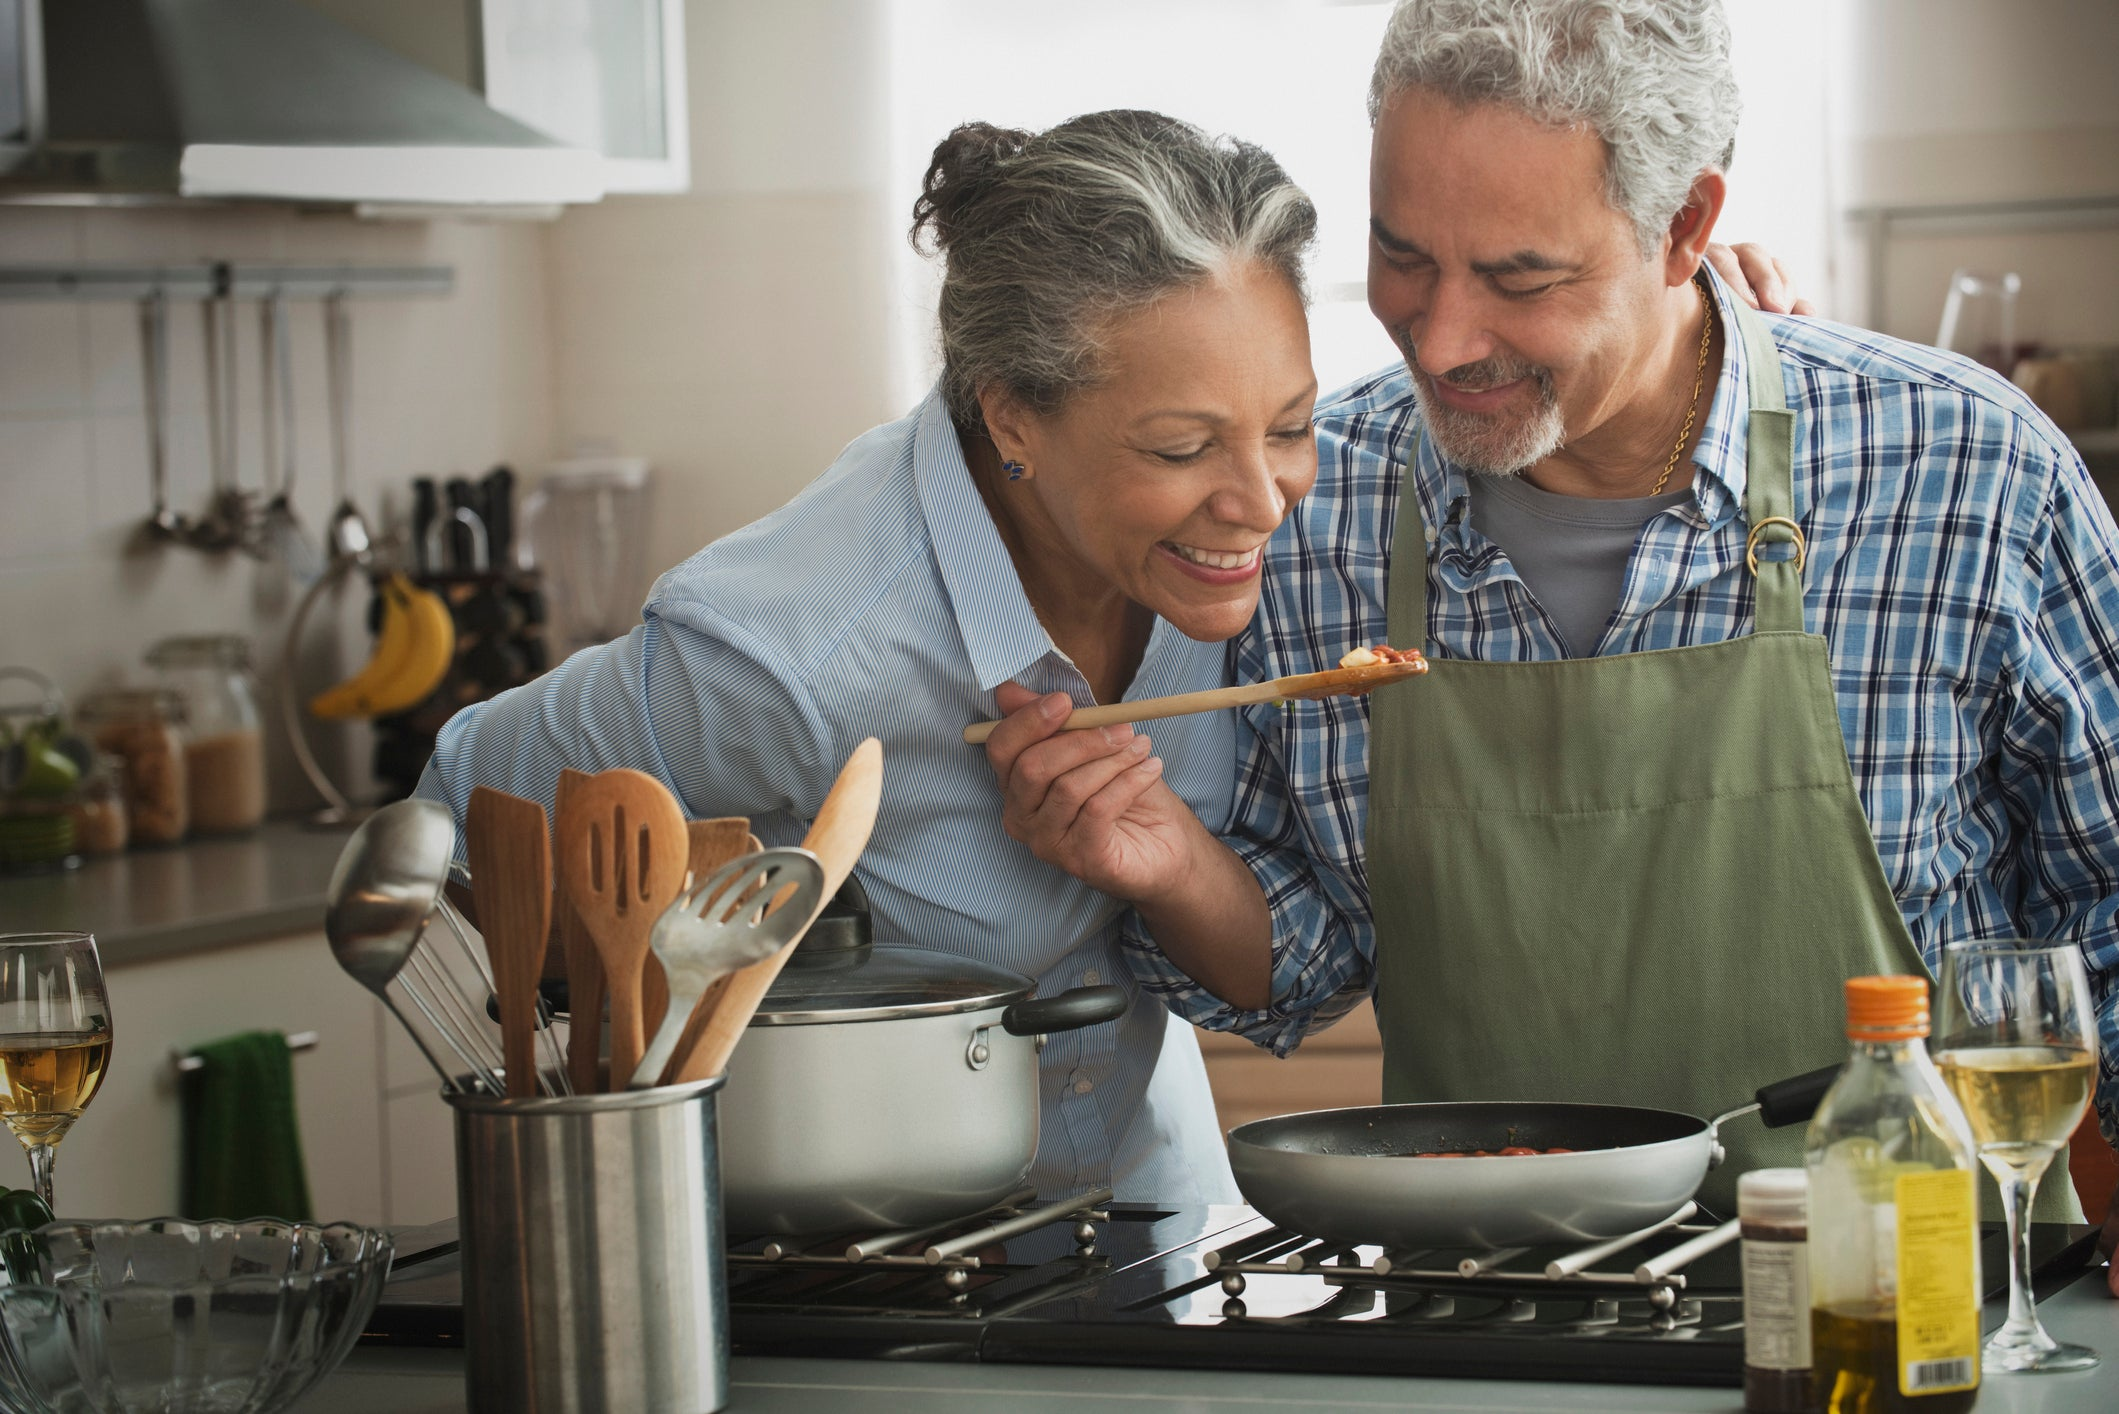 Should You Claim Social Security at Your Full Retirement Age?